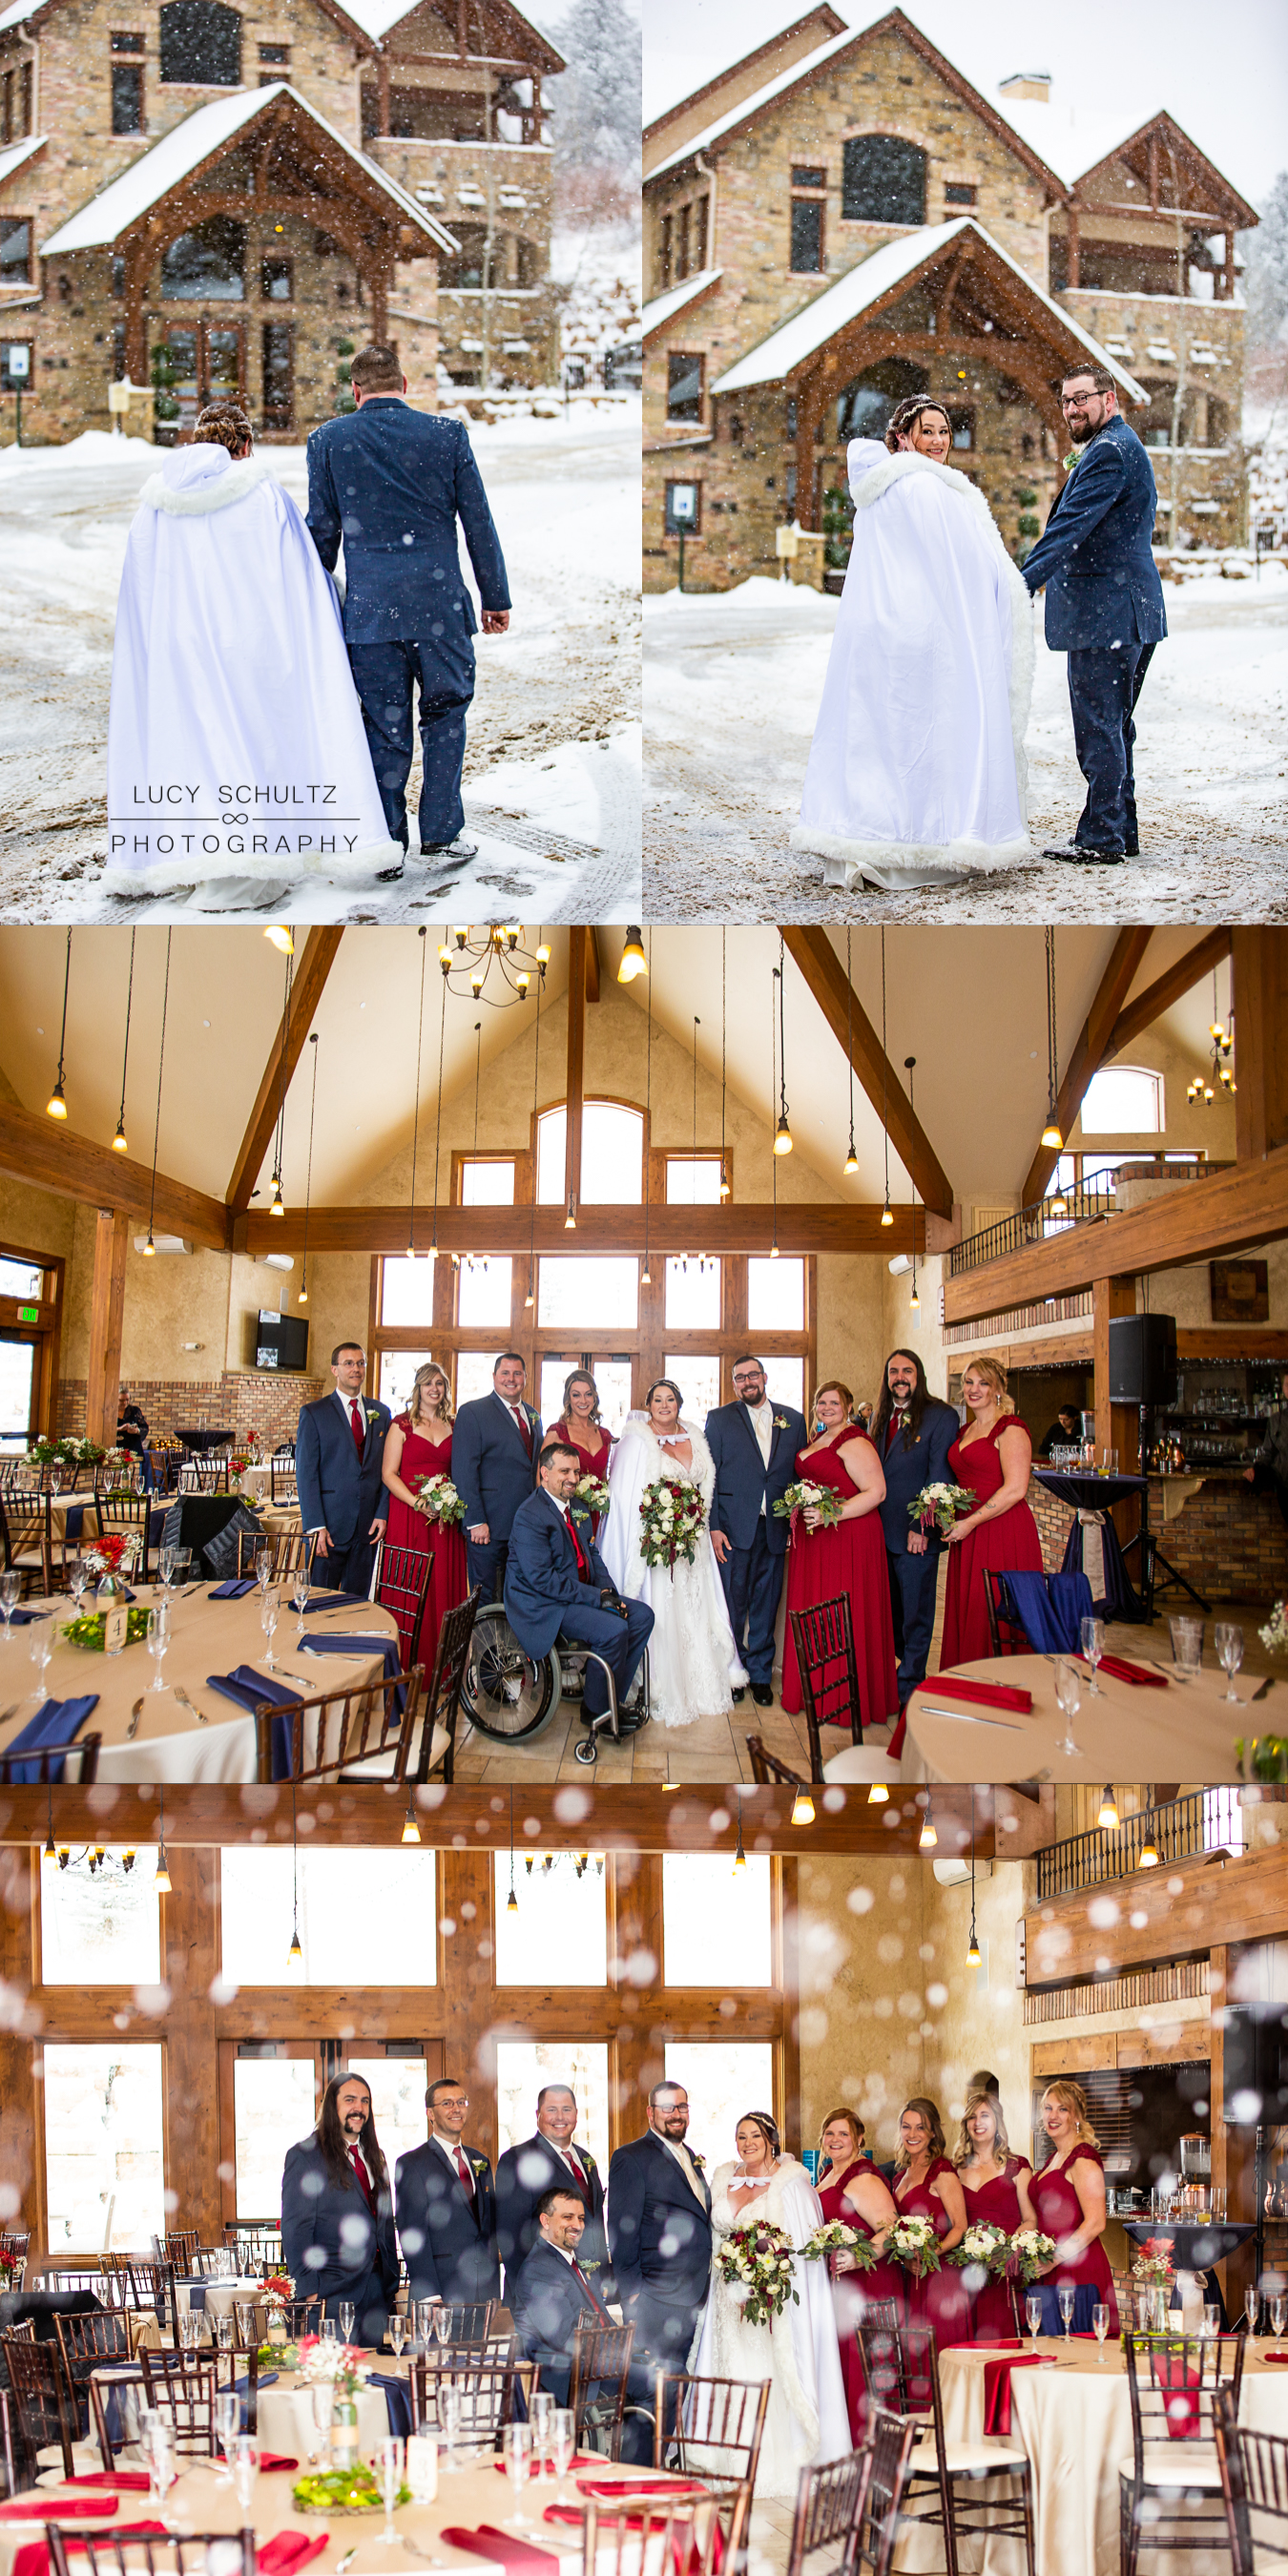 12DellaTerraWinterWEddingBridalPartyColorsNavyandRed